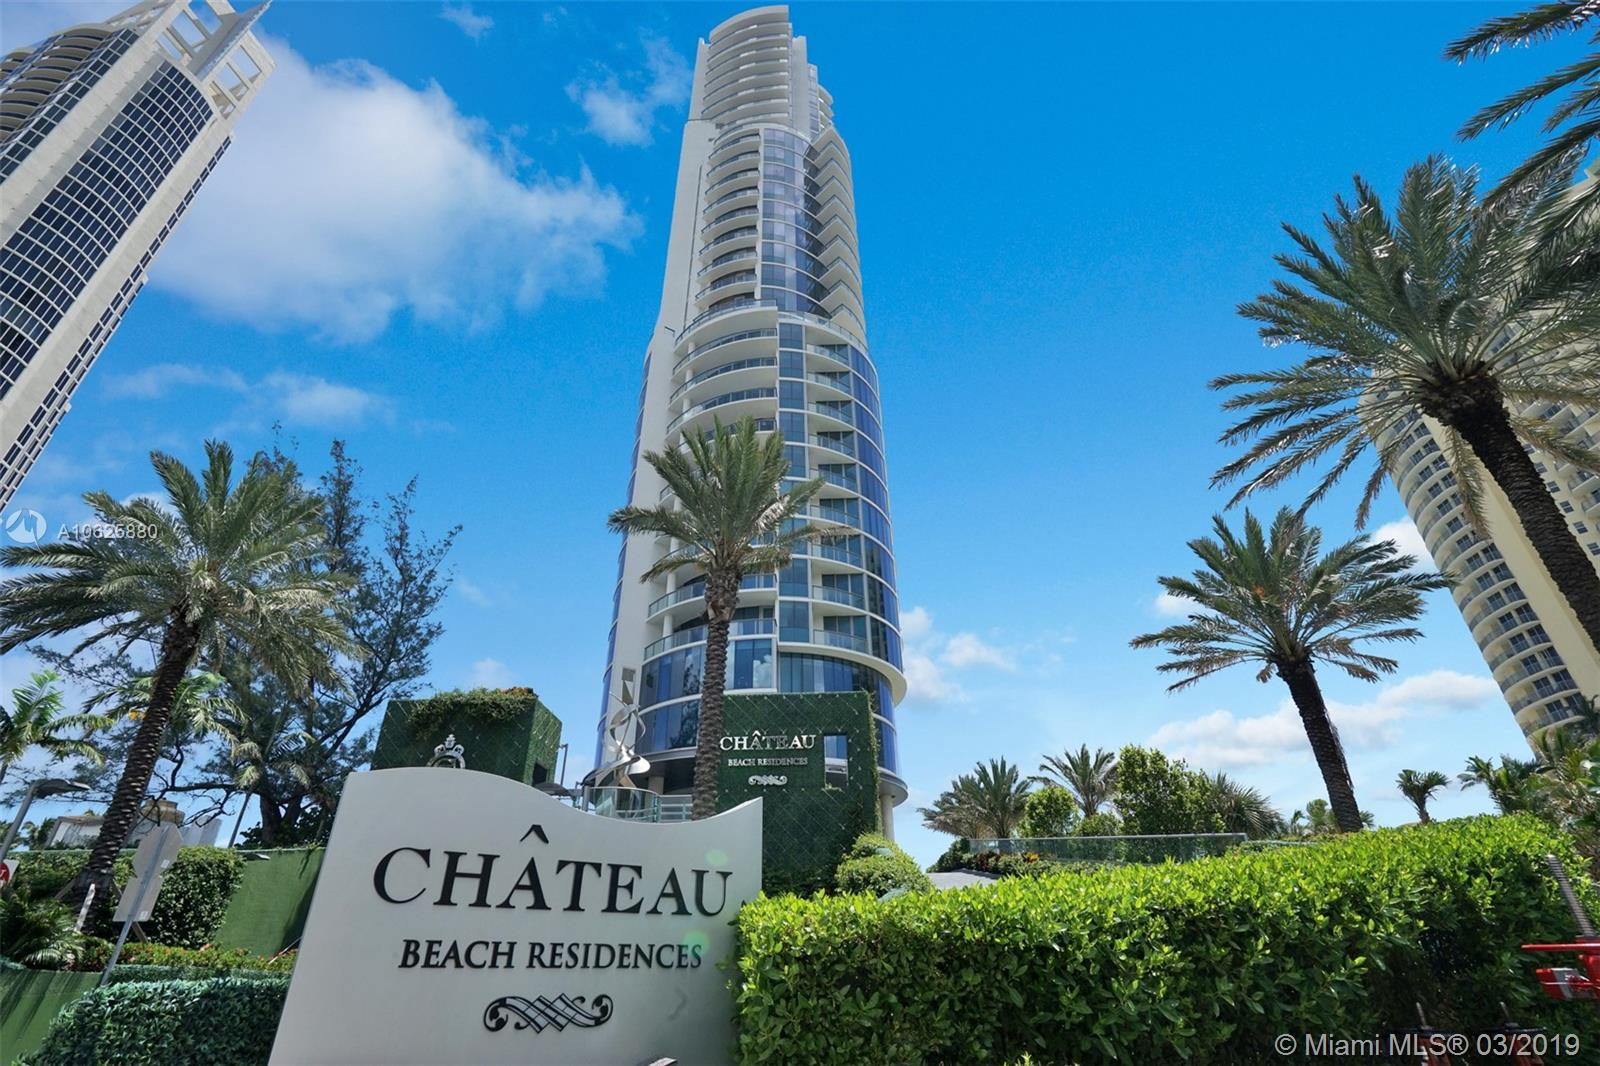 Chateau beach